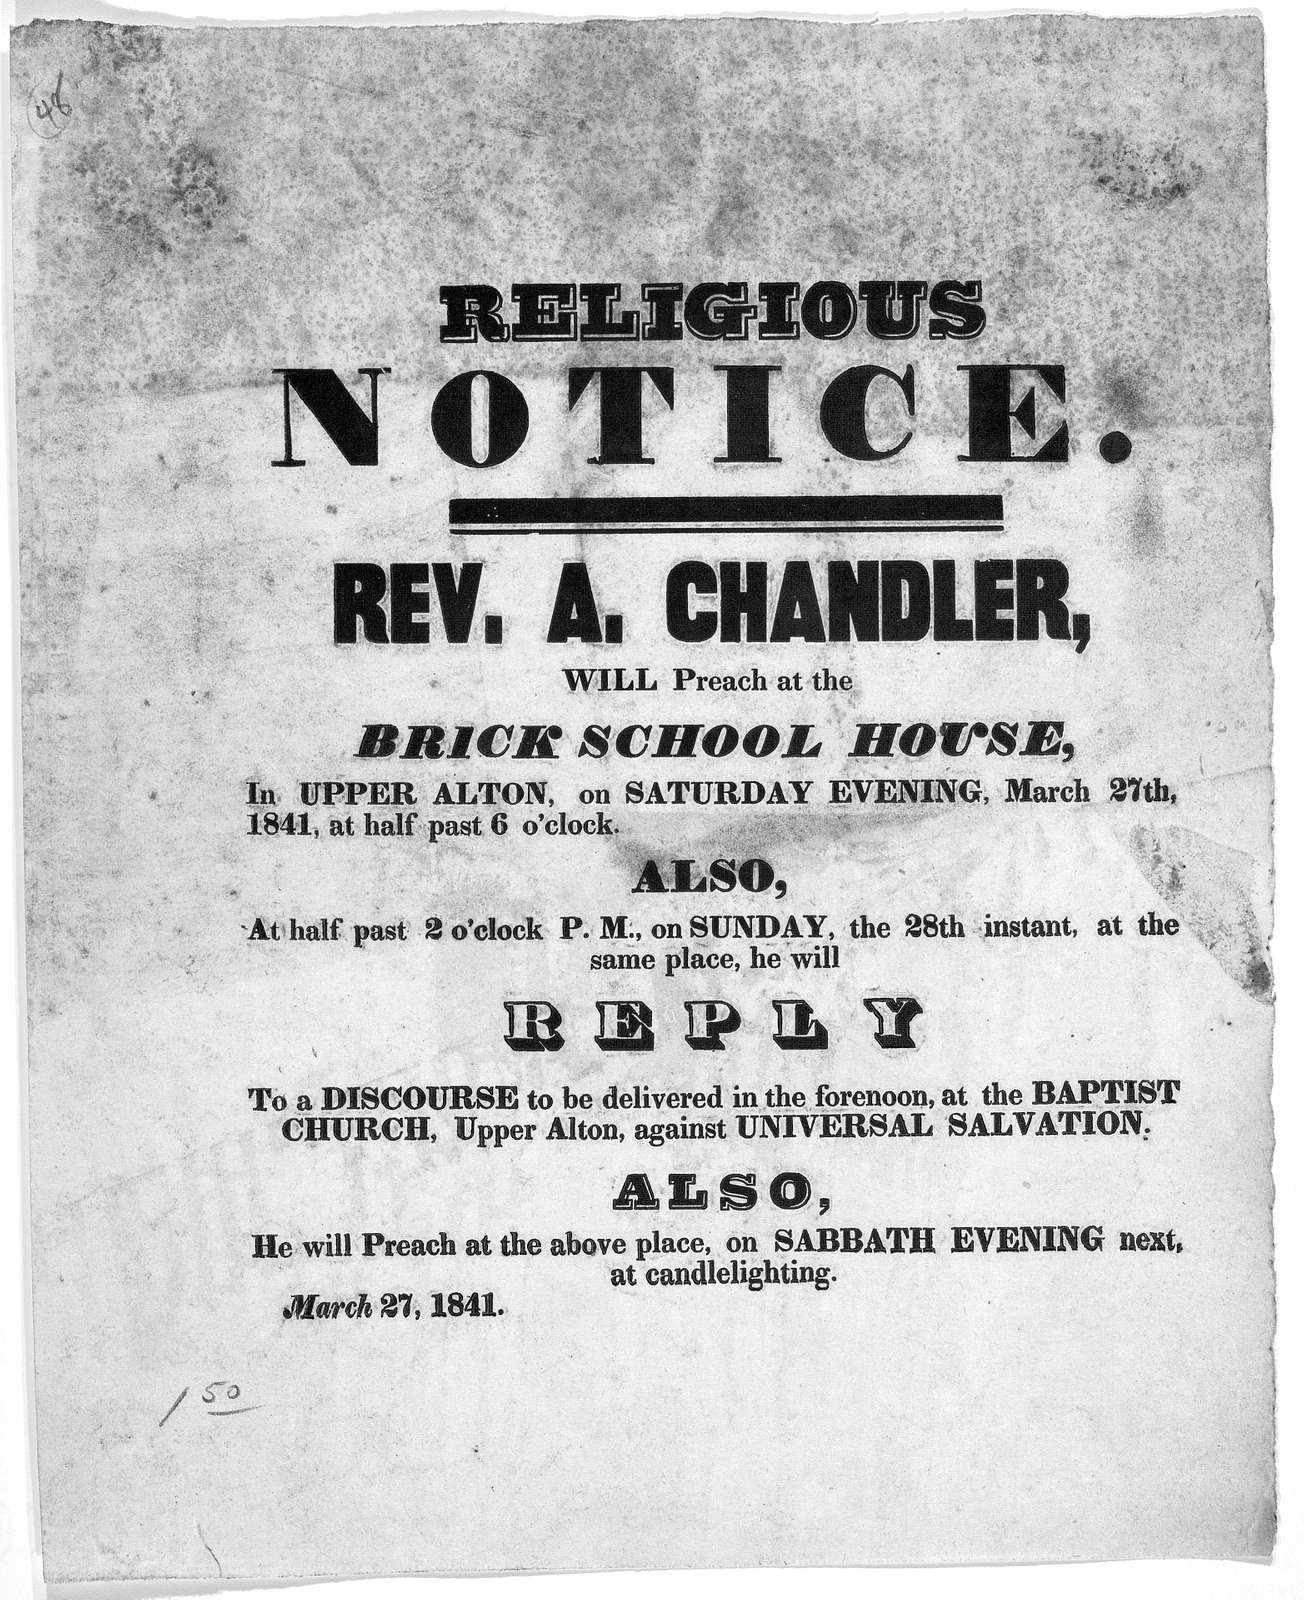 Religious notice. Rev. A. Chandler, will preach at the Brick school house, in Upper Alton, on Saturday evening, March 27th, 1841 at half past 6 o'clock ... He will preach at the above place, on Sabbath evening next, at candlelighting. March 27,